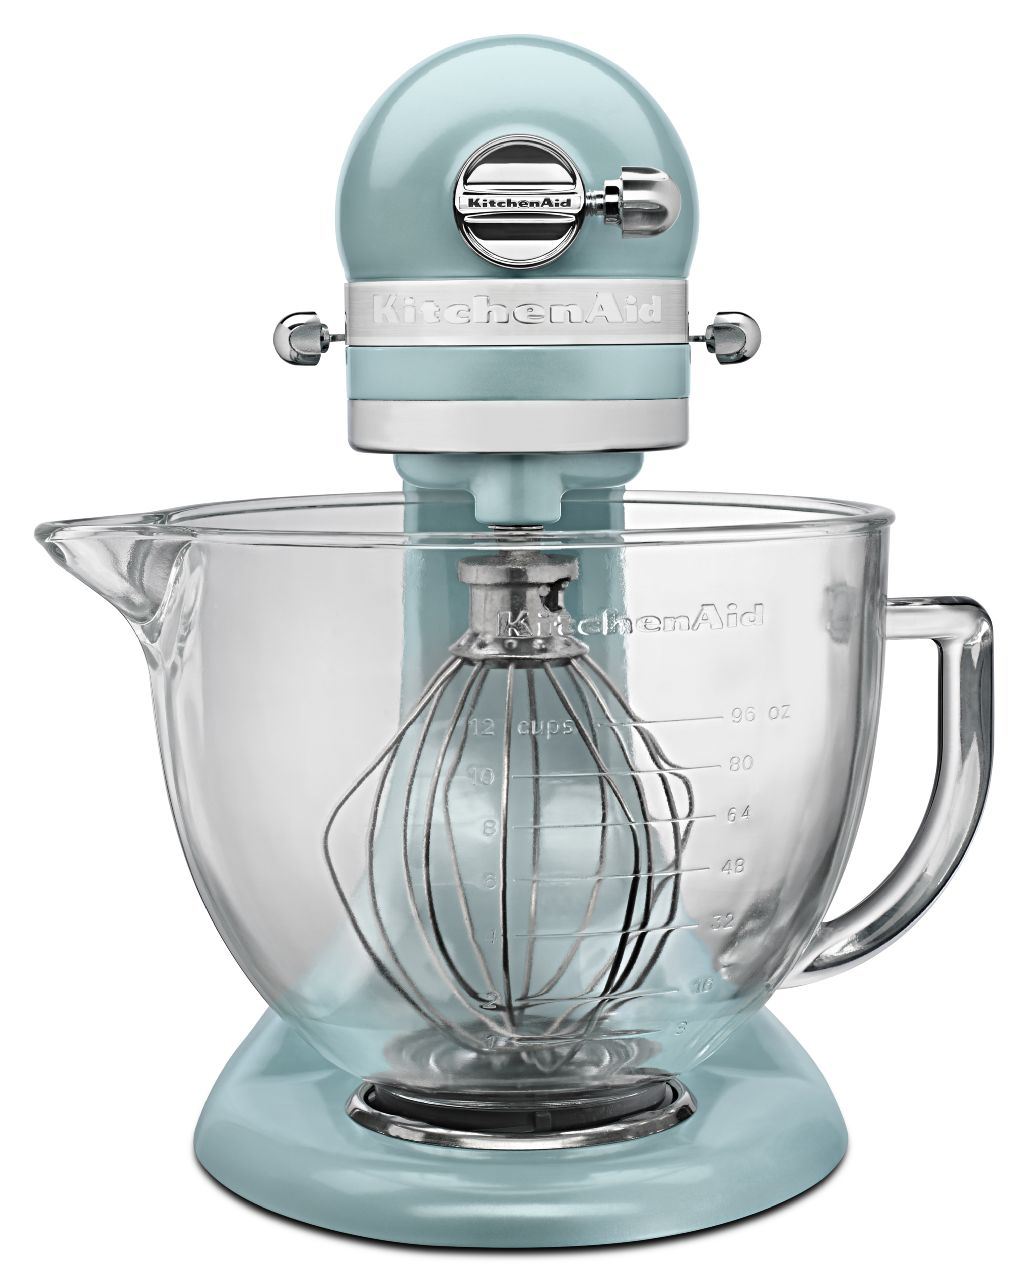 Kitchenaid Artisan Design Blue Stand Mixer Ksm155gbaz